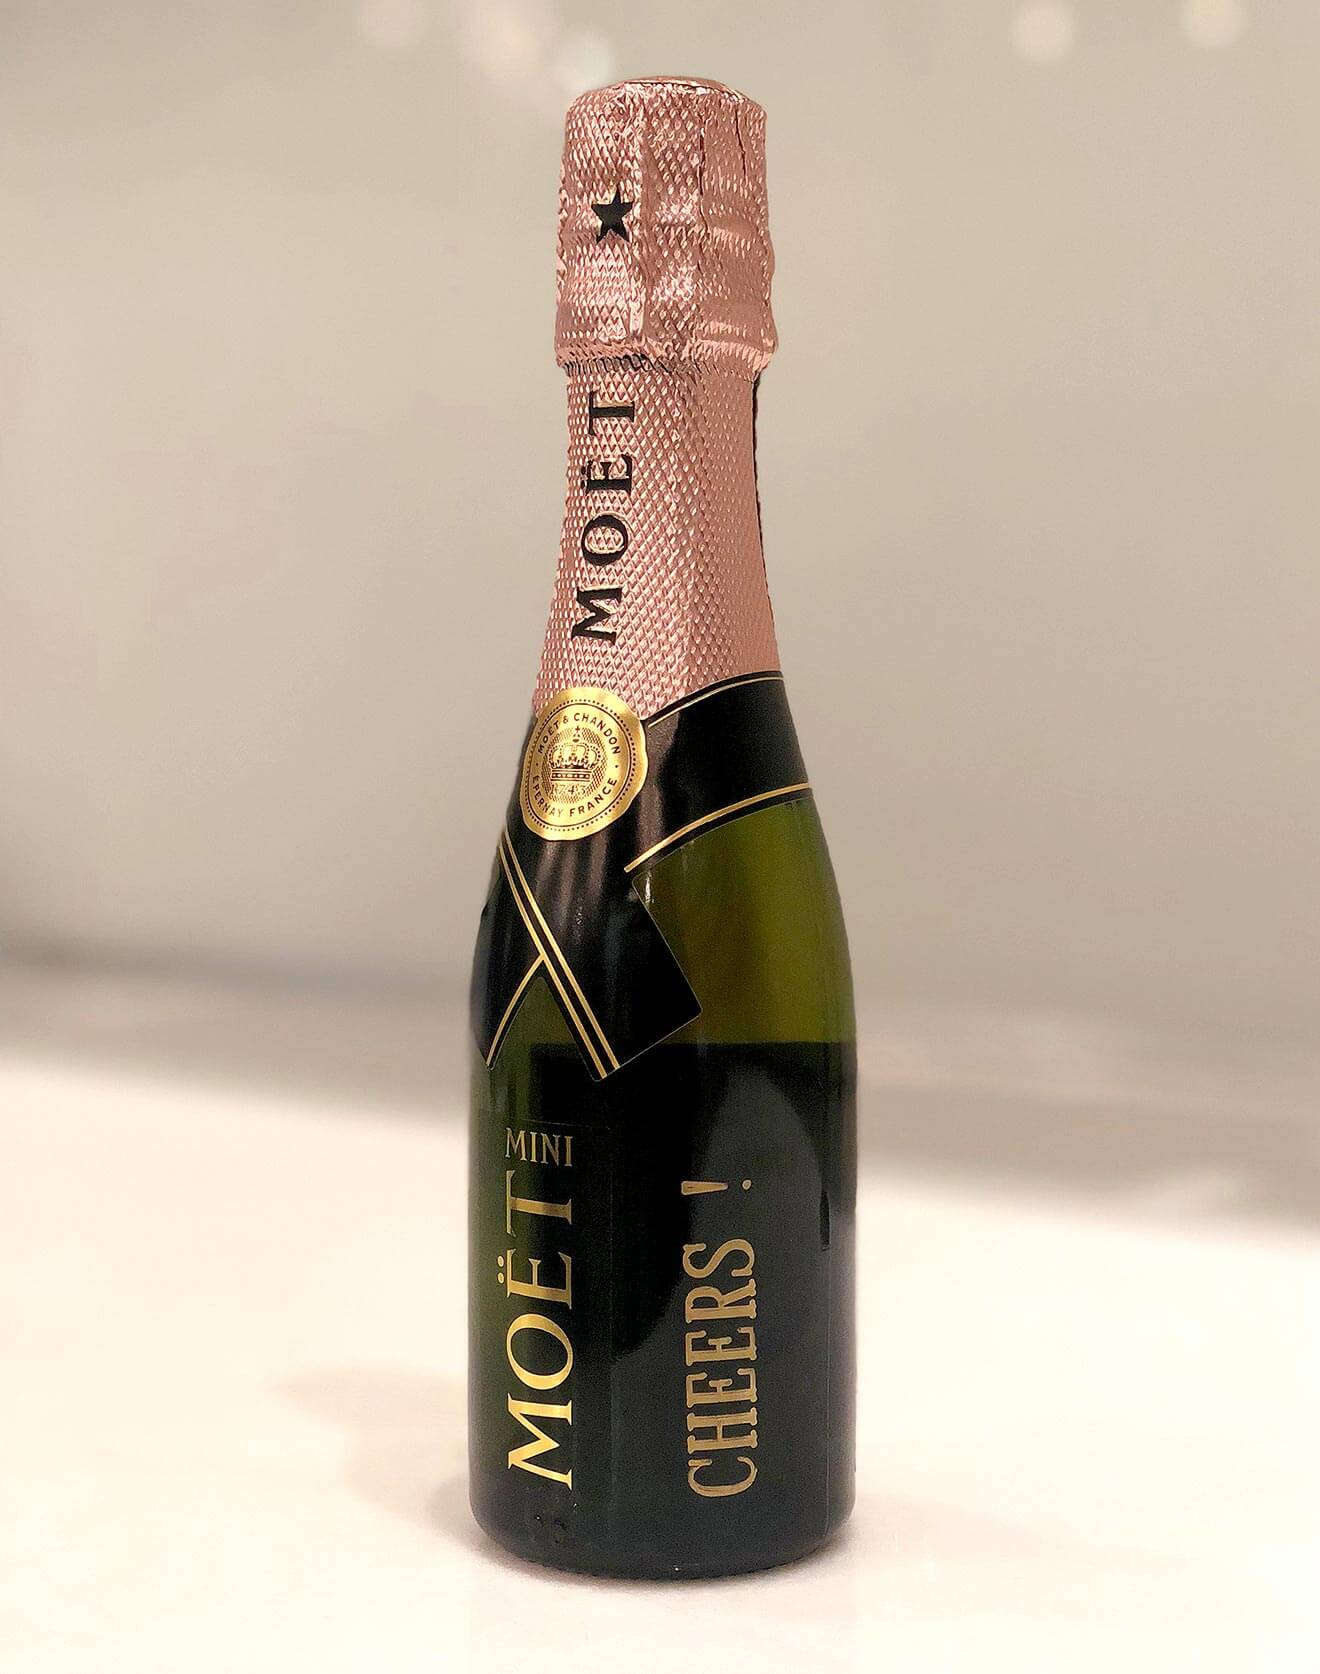 Personalized Moët Mini bottle